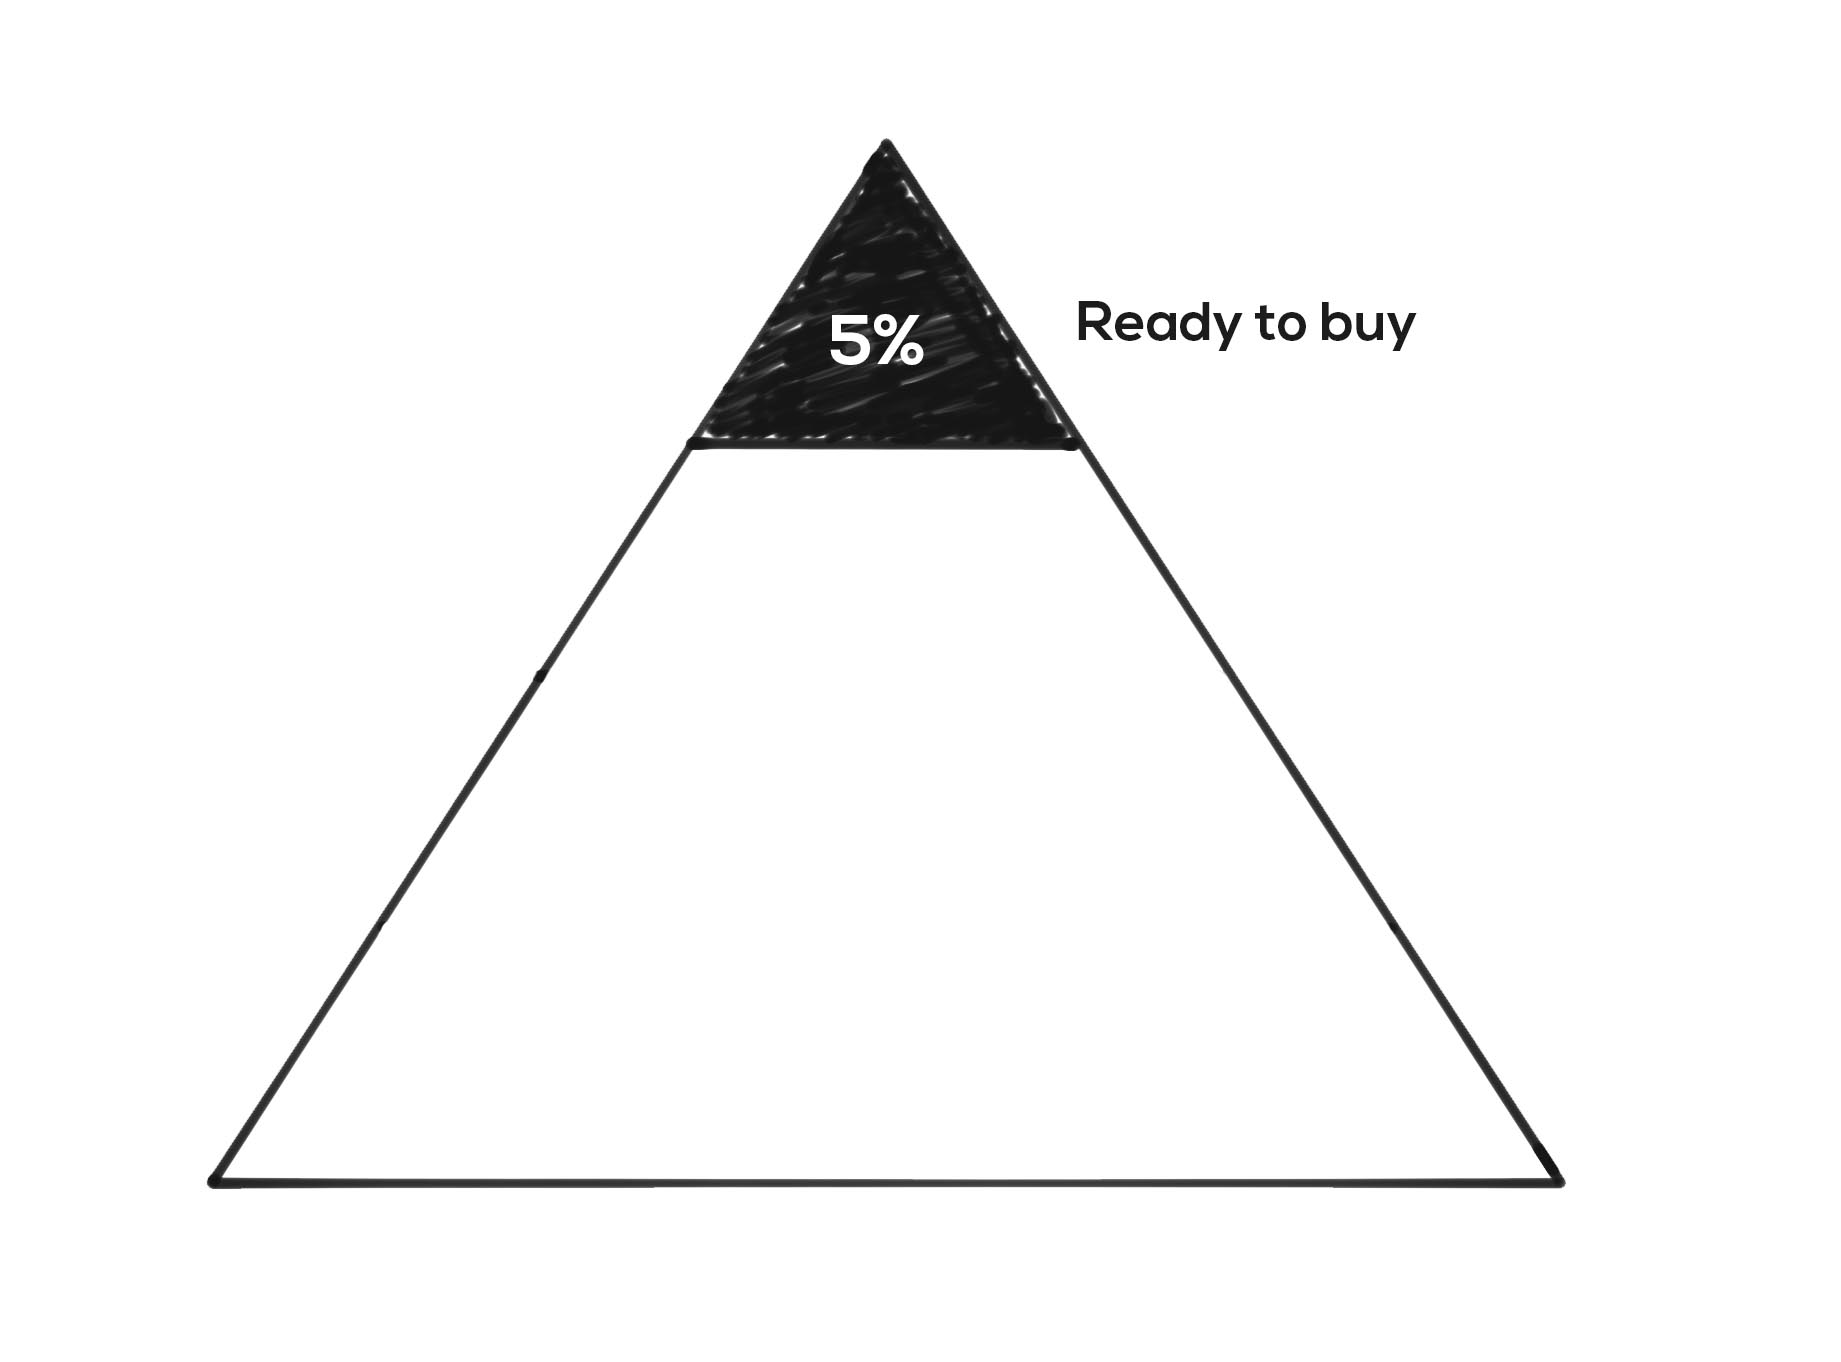 market_intent_ready_to_buy